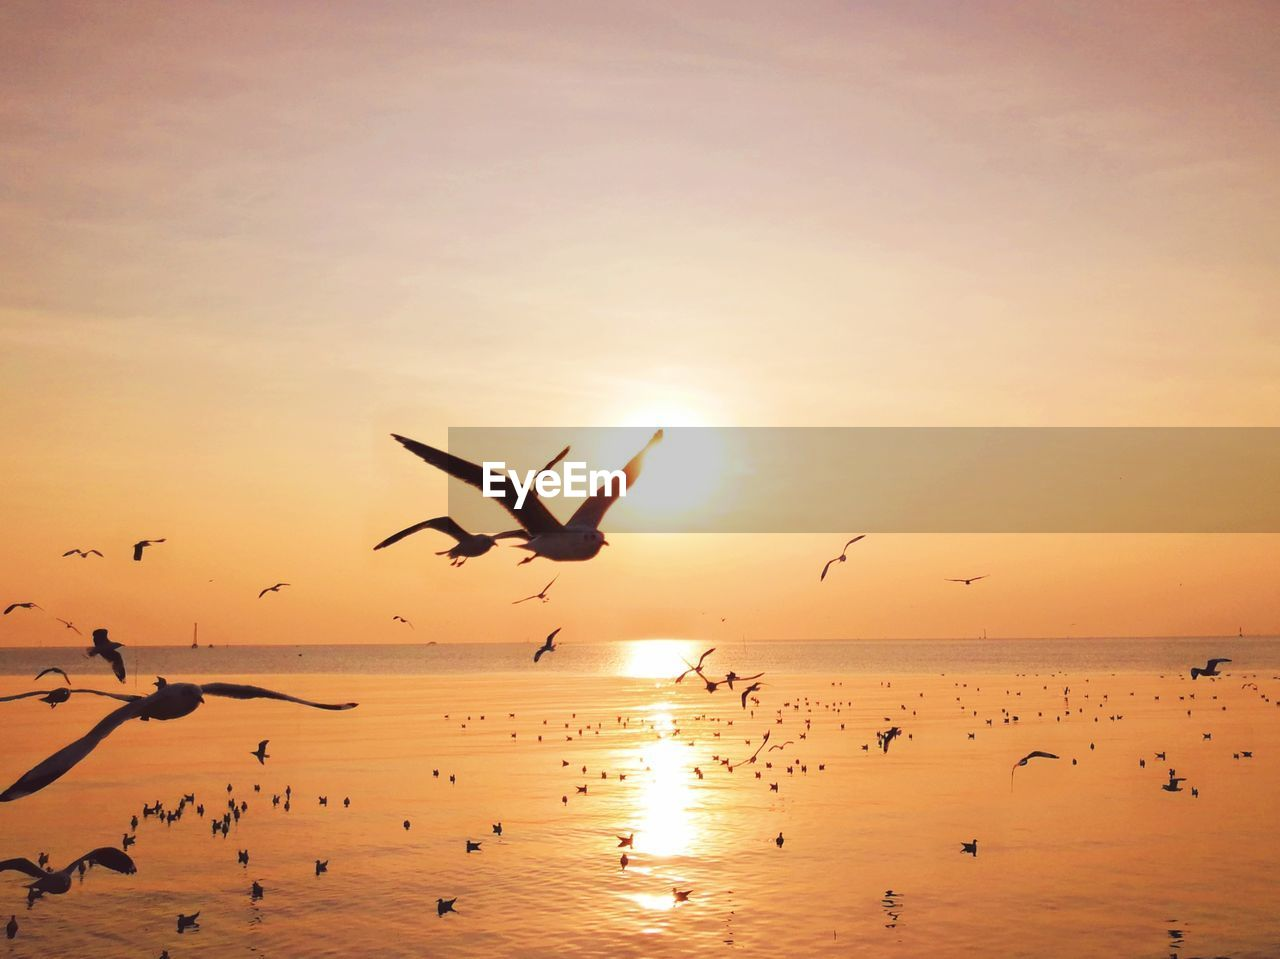 sunset, sky, bird, flying, orange color, water, group of animals, mid-air, silhouette, beauty in nature, animal, sea, animal themes, vertebrate, animals in the wild, scenics - nature, animal wildlife, large group of animals, sun, horizon over water, flock of birds, seagull